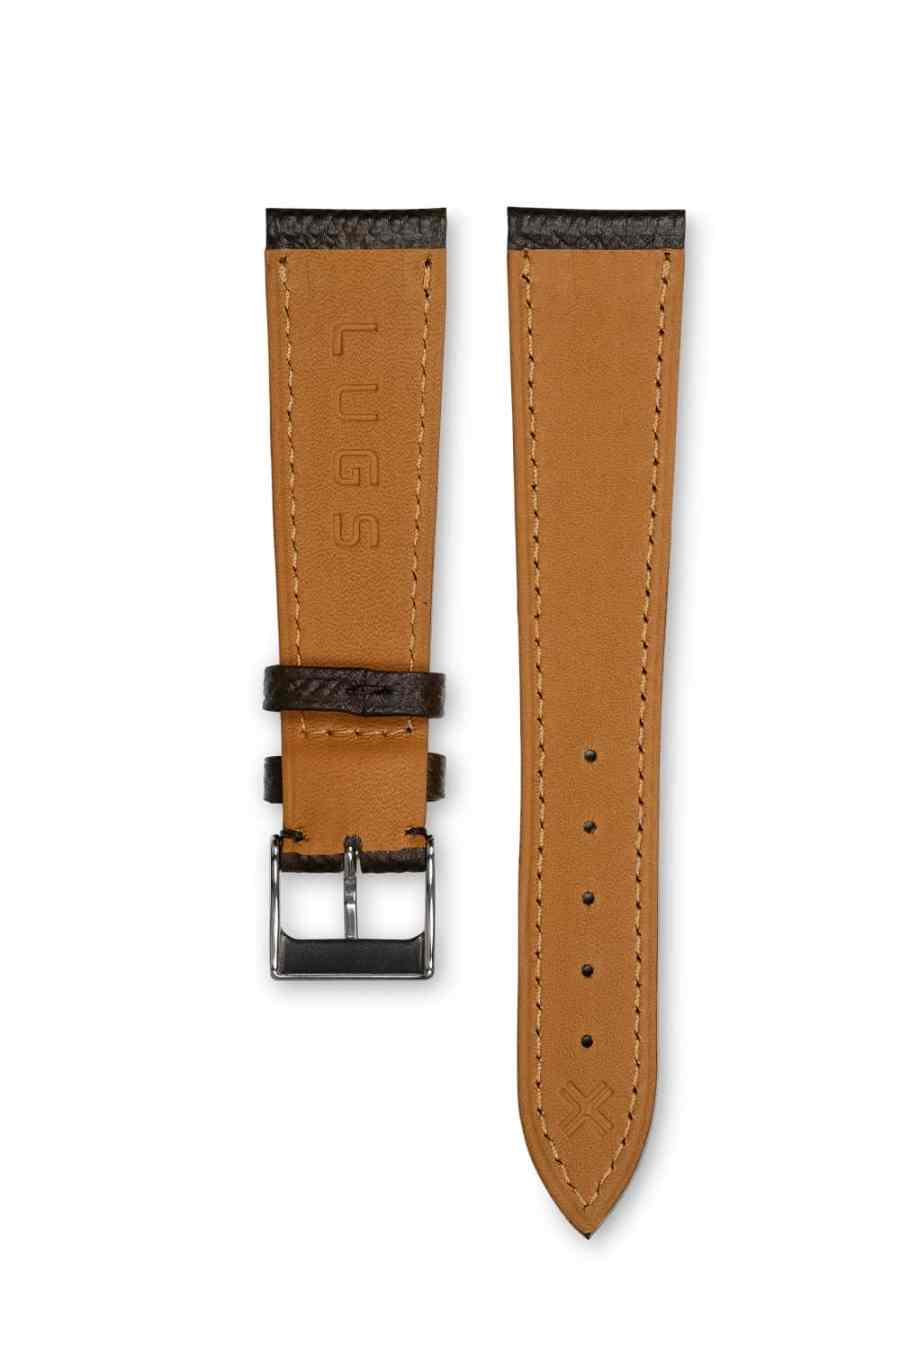 Grained Classic chocolate brown leather watch strap - tone on tone stitching - LUGS brand